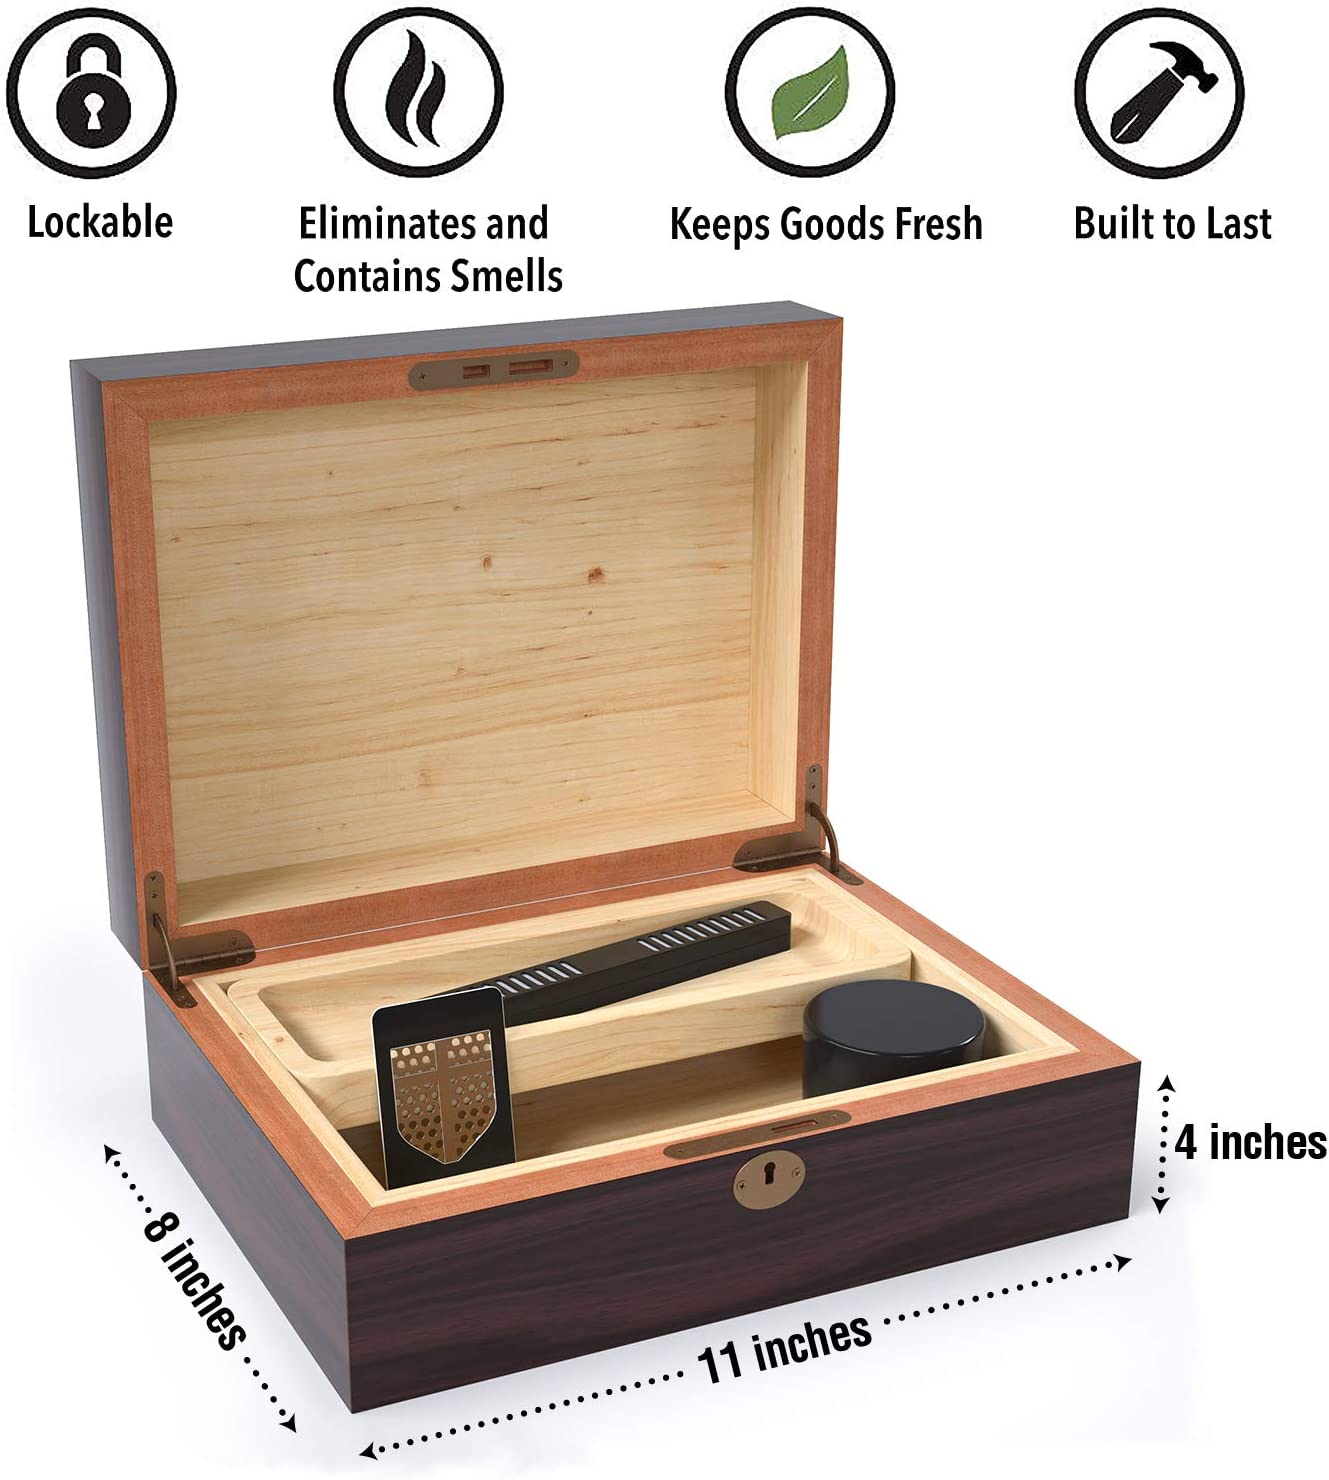 Rolling Tray and Humidifier to Keep Goods Fresh Includes Smell Proof Jar Locking Wood Stash Box by Herb Guard Nearly Double The Size of Leading Competitors